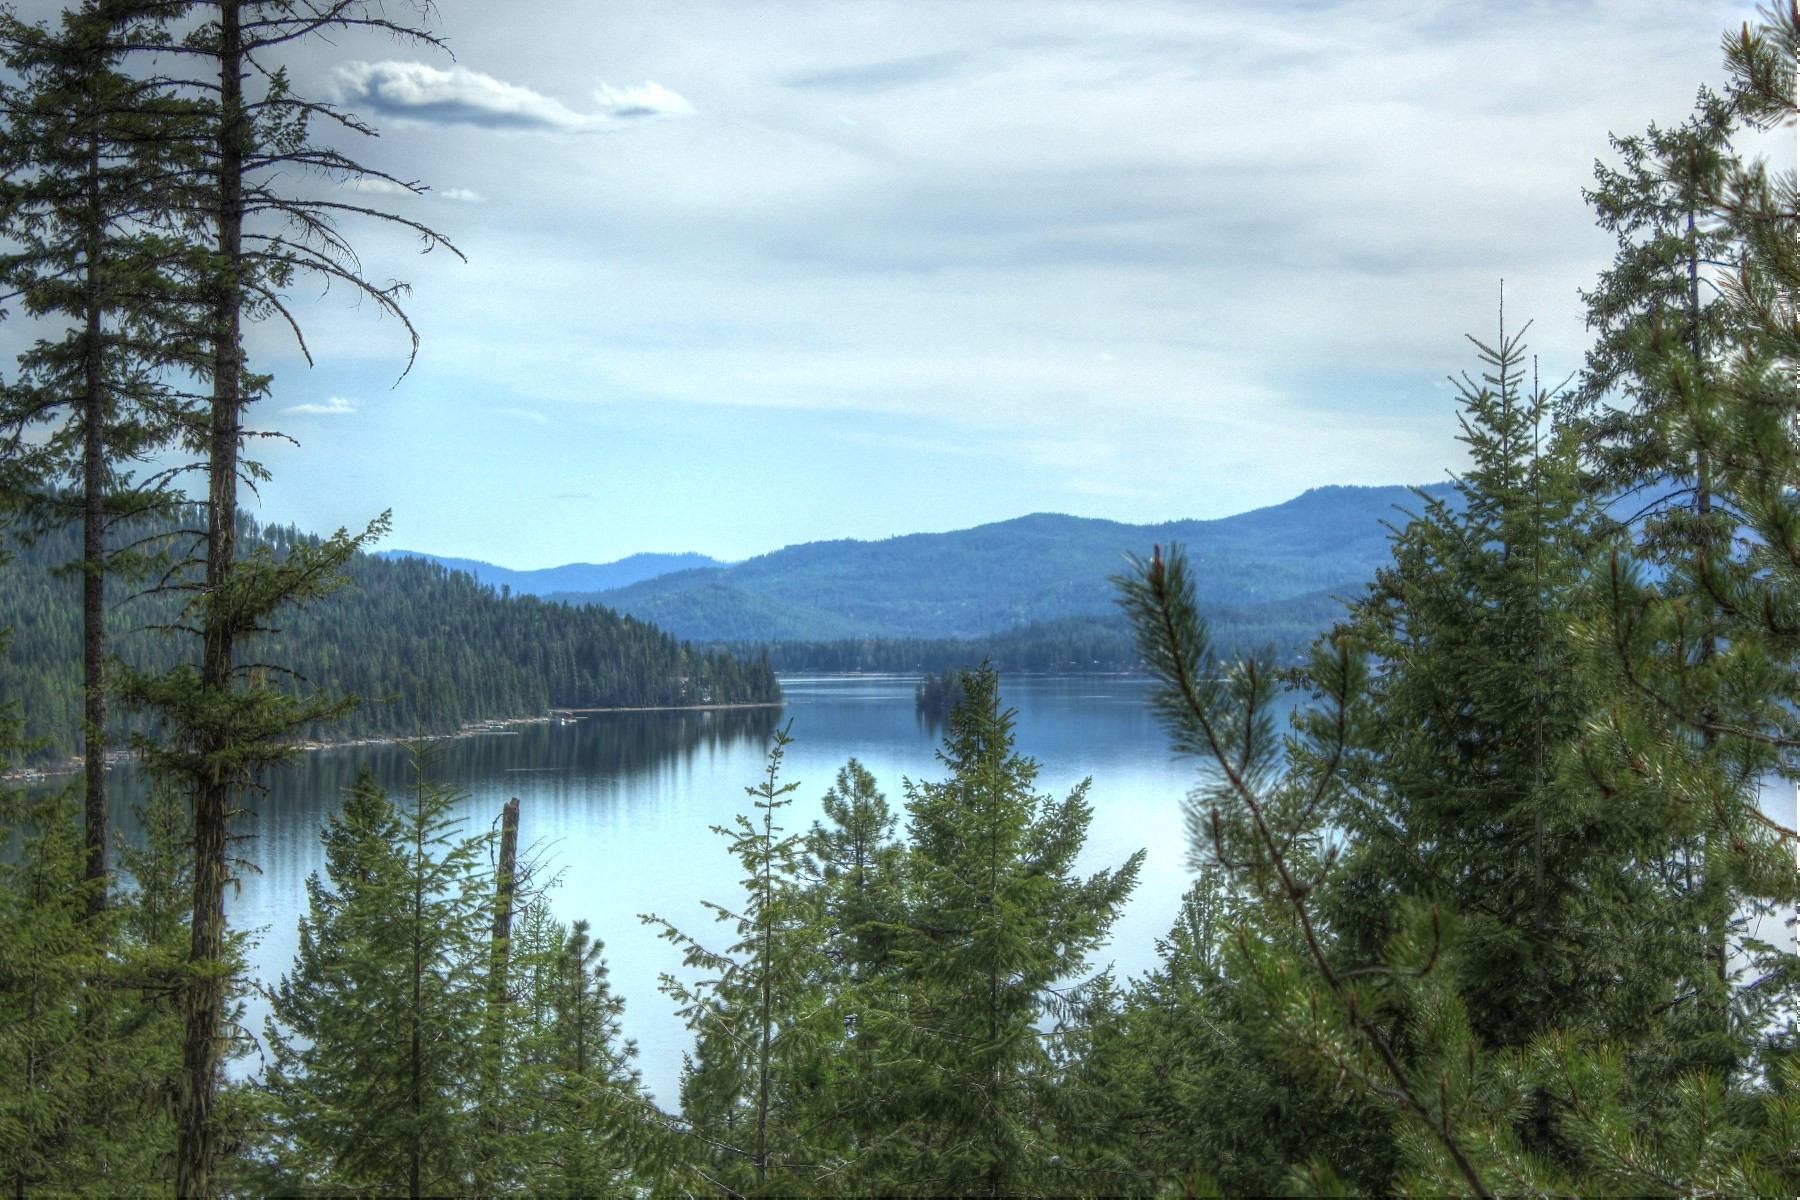 Land for Sale at RidgeView Terrace at Huckleberry Bay 10 Ridgeview Ln Coolin, Idaho 83821 United States